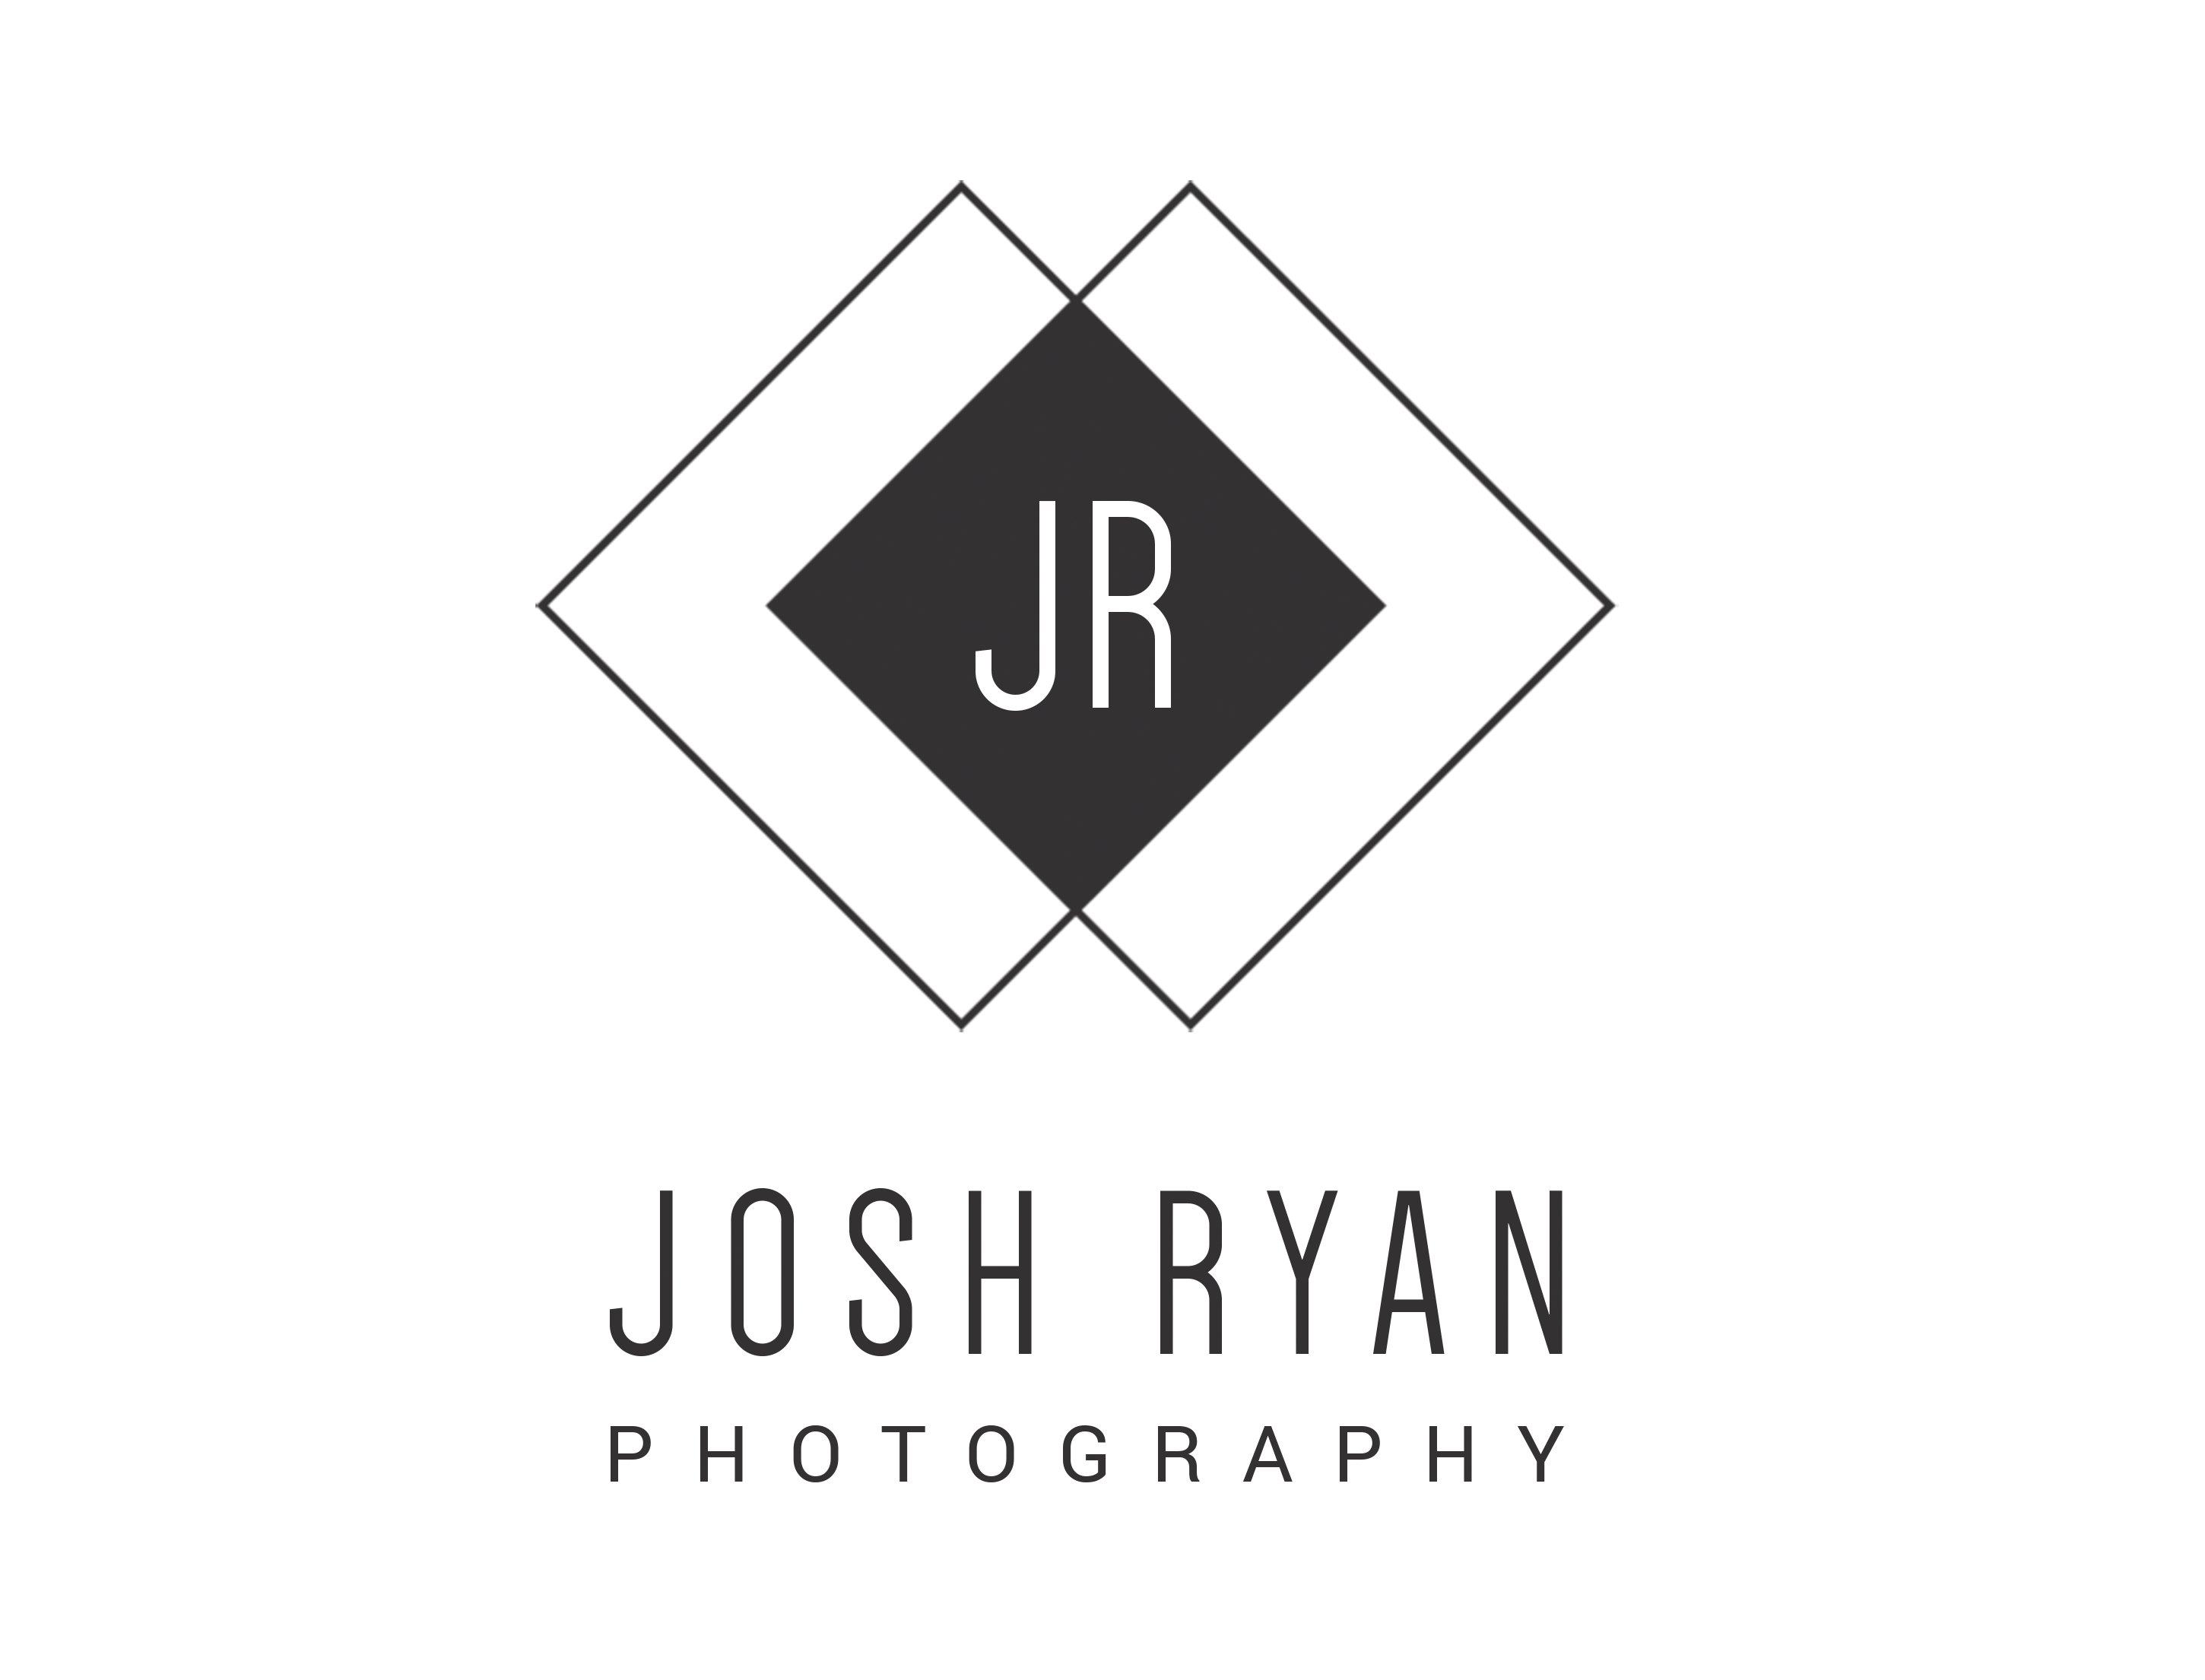 Josh Ryan Photography - Documentary Wedding Photographer